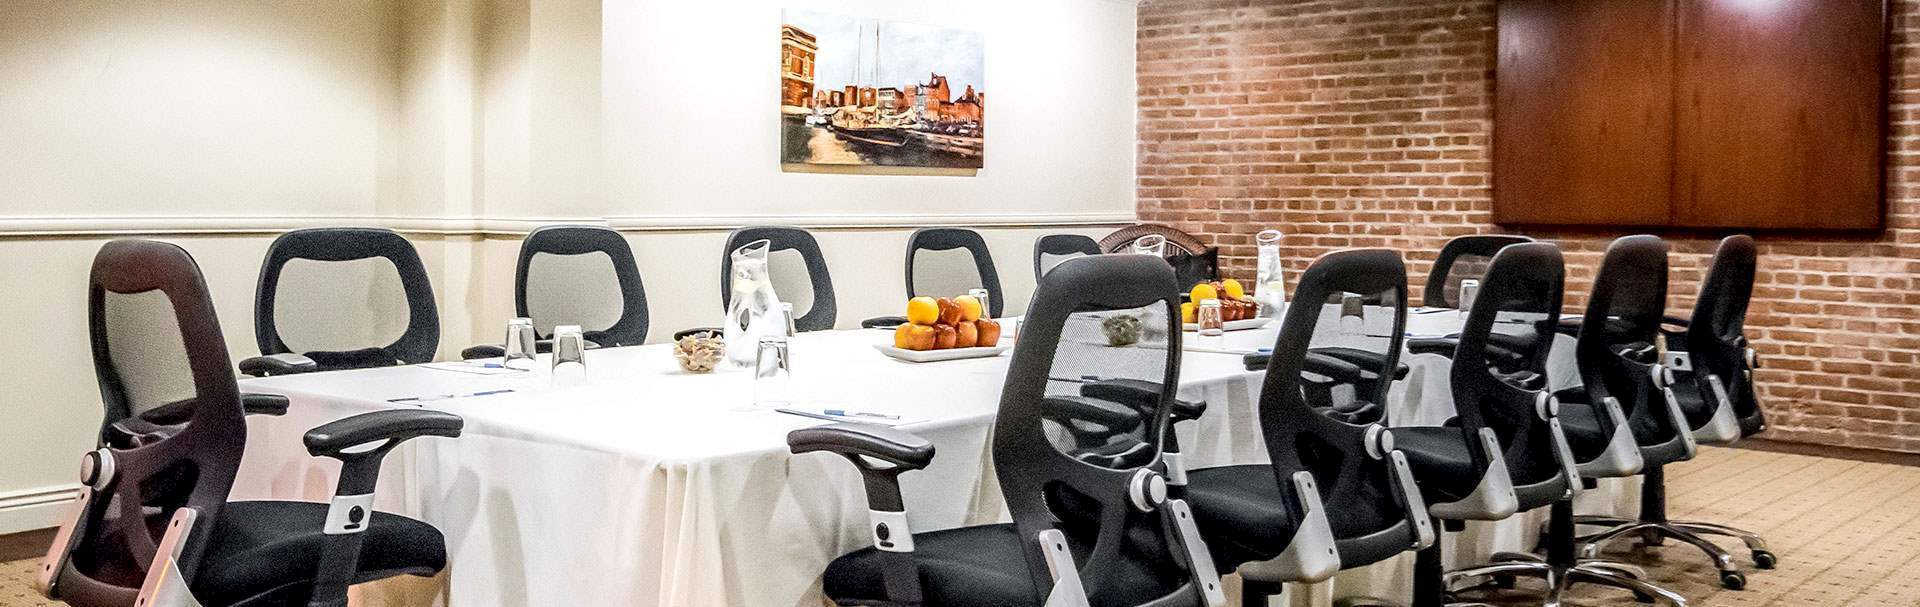 Meeting & Events Spaces at Inn at Henderson's Wharf Baltimore, Maryland